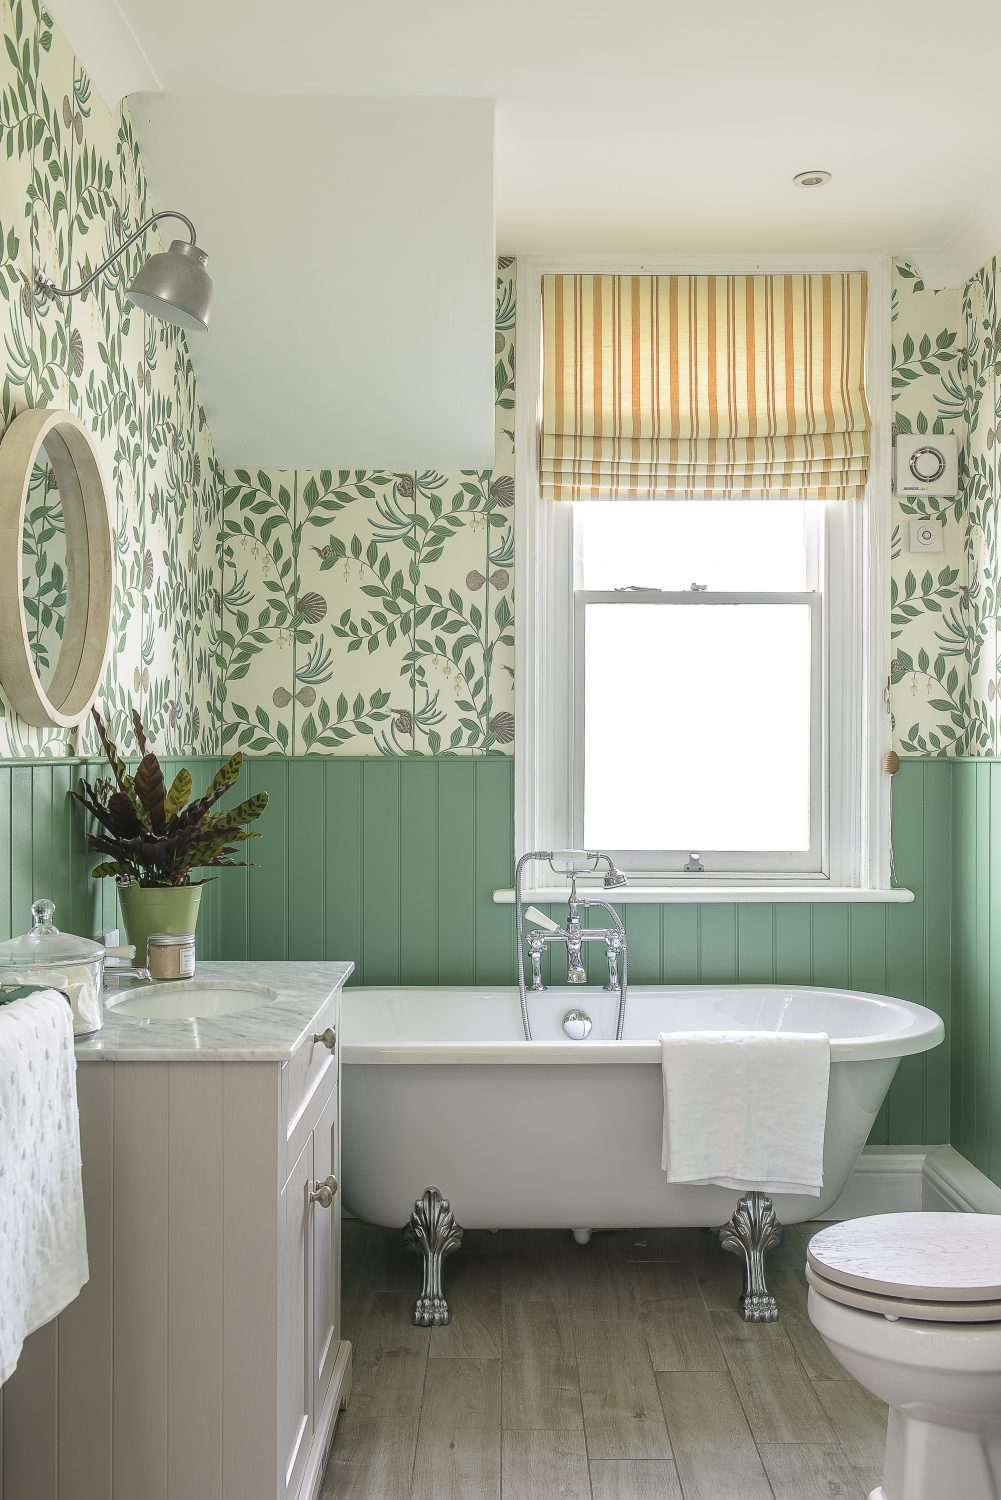 The family bathroom is an invitingly fresh space, with peppermint green tongue and groove panelling below Cole & Sons 'Secret Garden' wallpaper. The striped Roman blind is made from a Haines Collection fabric and the bath, marble-topped basin unit and taps are by Hudson Reed